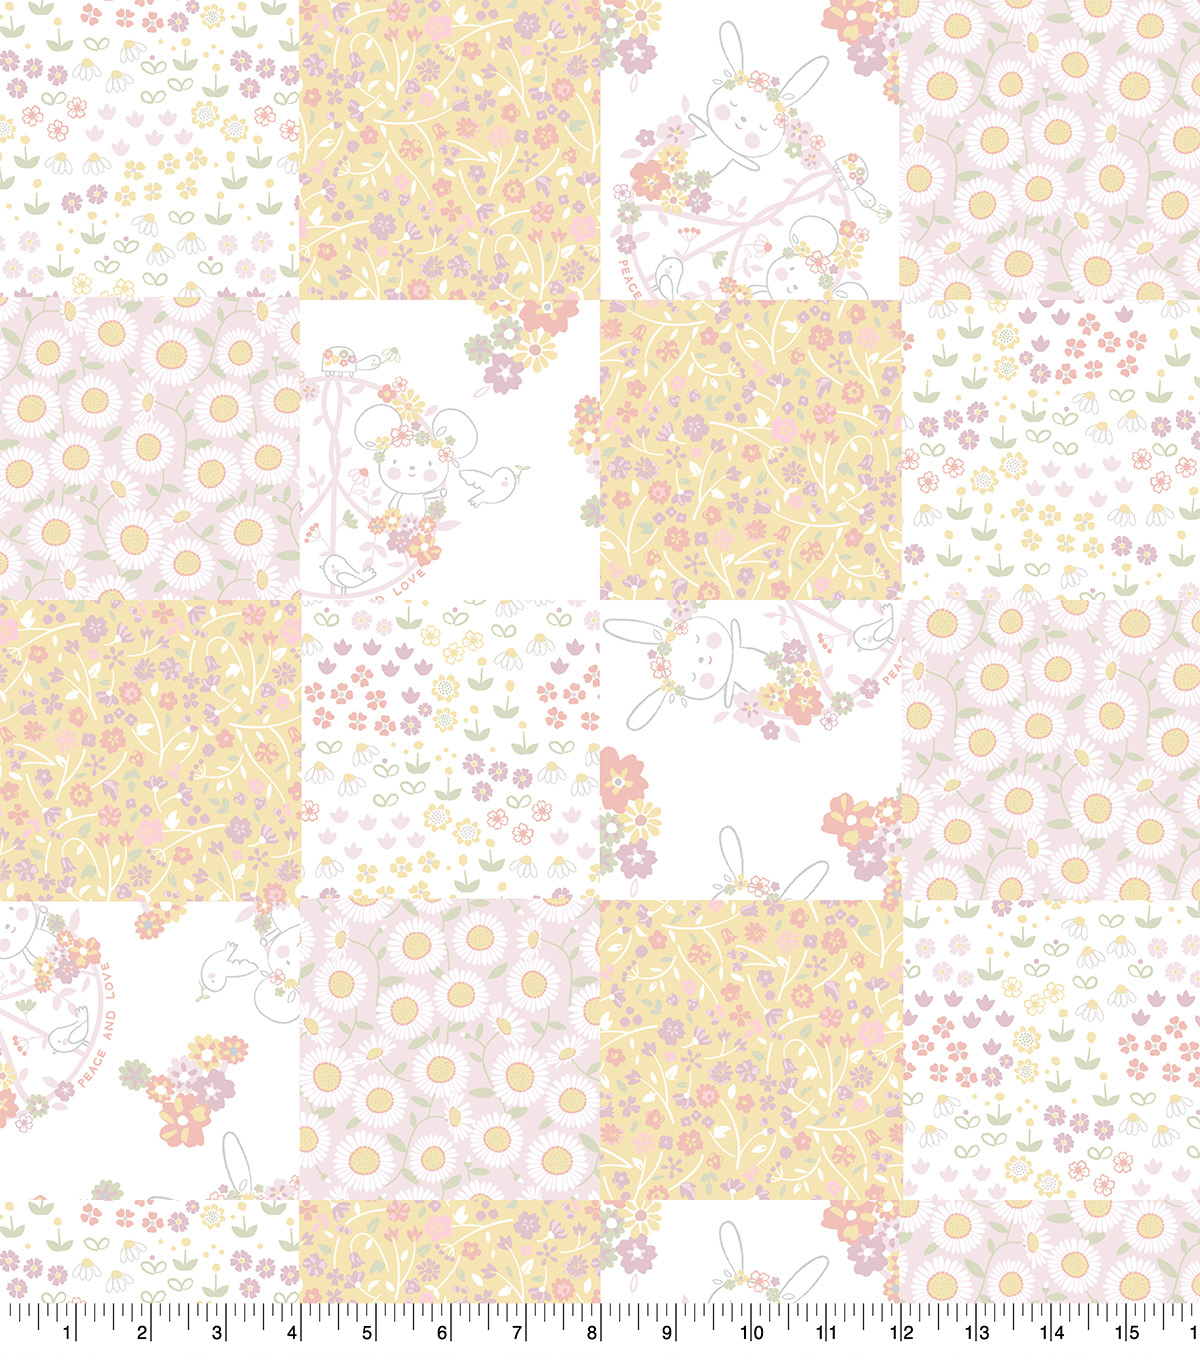 Nursery 3D Patch Fabric-Floral Bunny